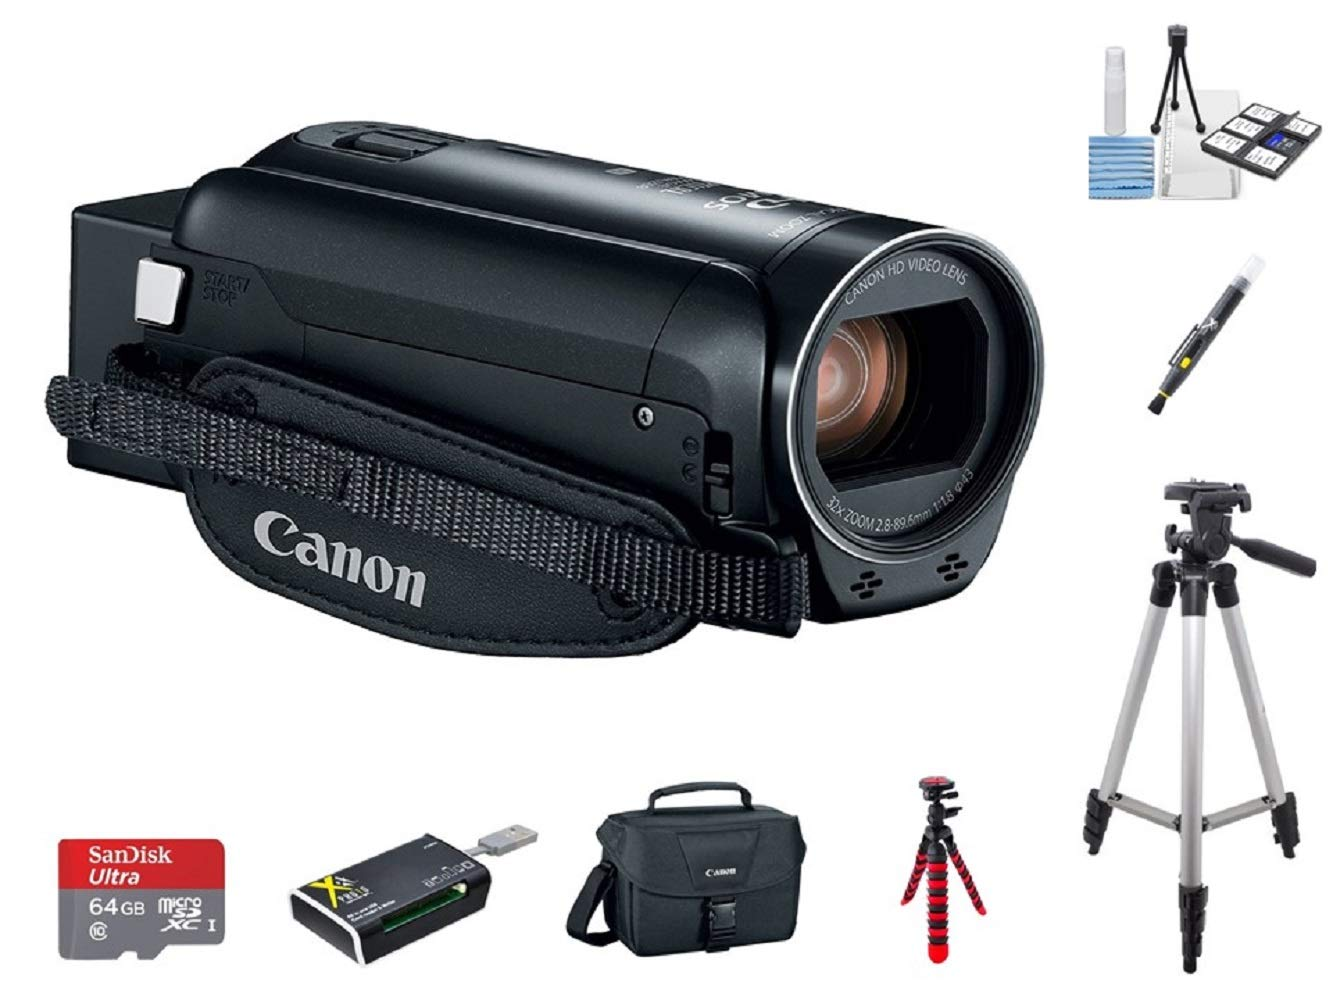 Canon VIXIA HF R82 A KIT + 2 Tripods + 64GB microSD Card + Camera Bag + Card Reader + 6PC Cleaning Kit + 2-in-1 Lens Cleaning Pen